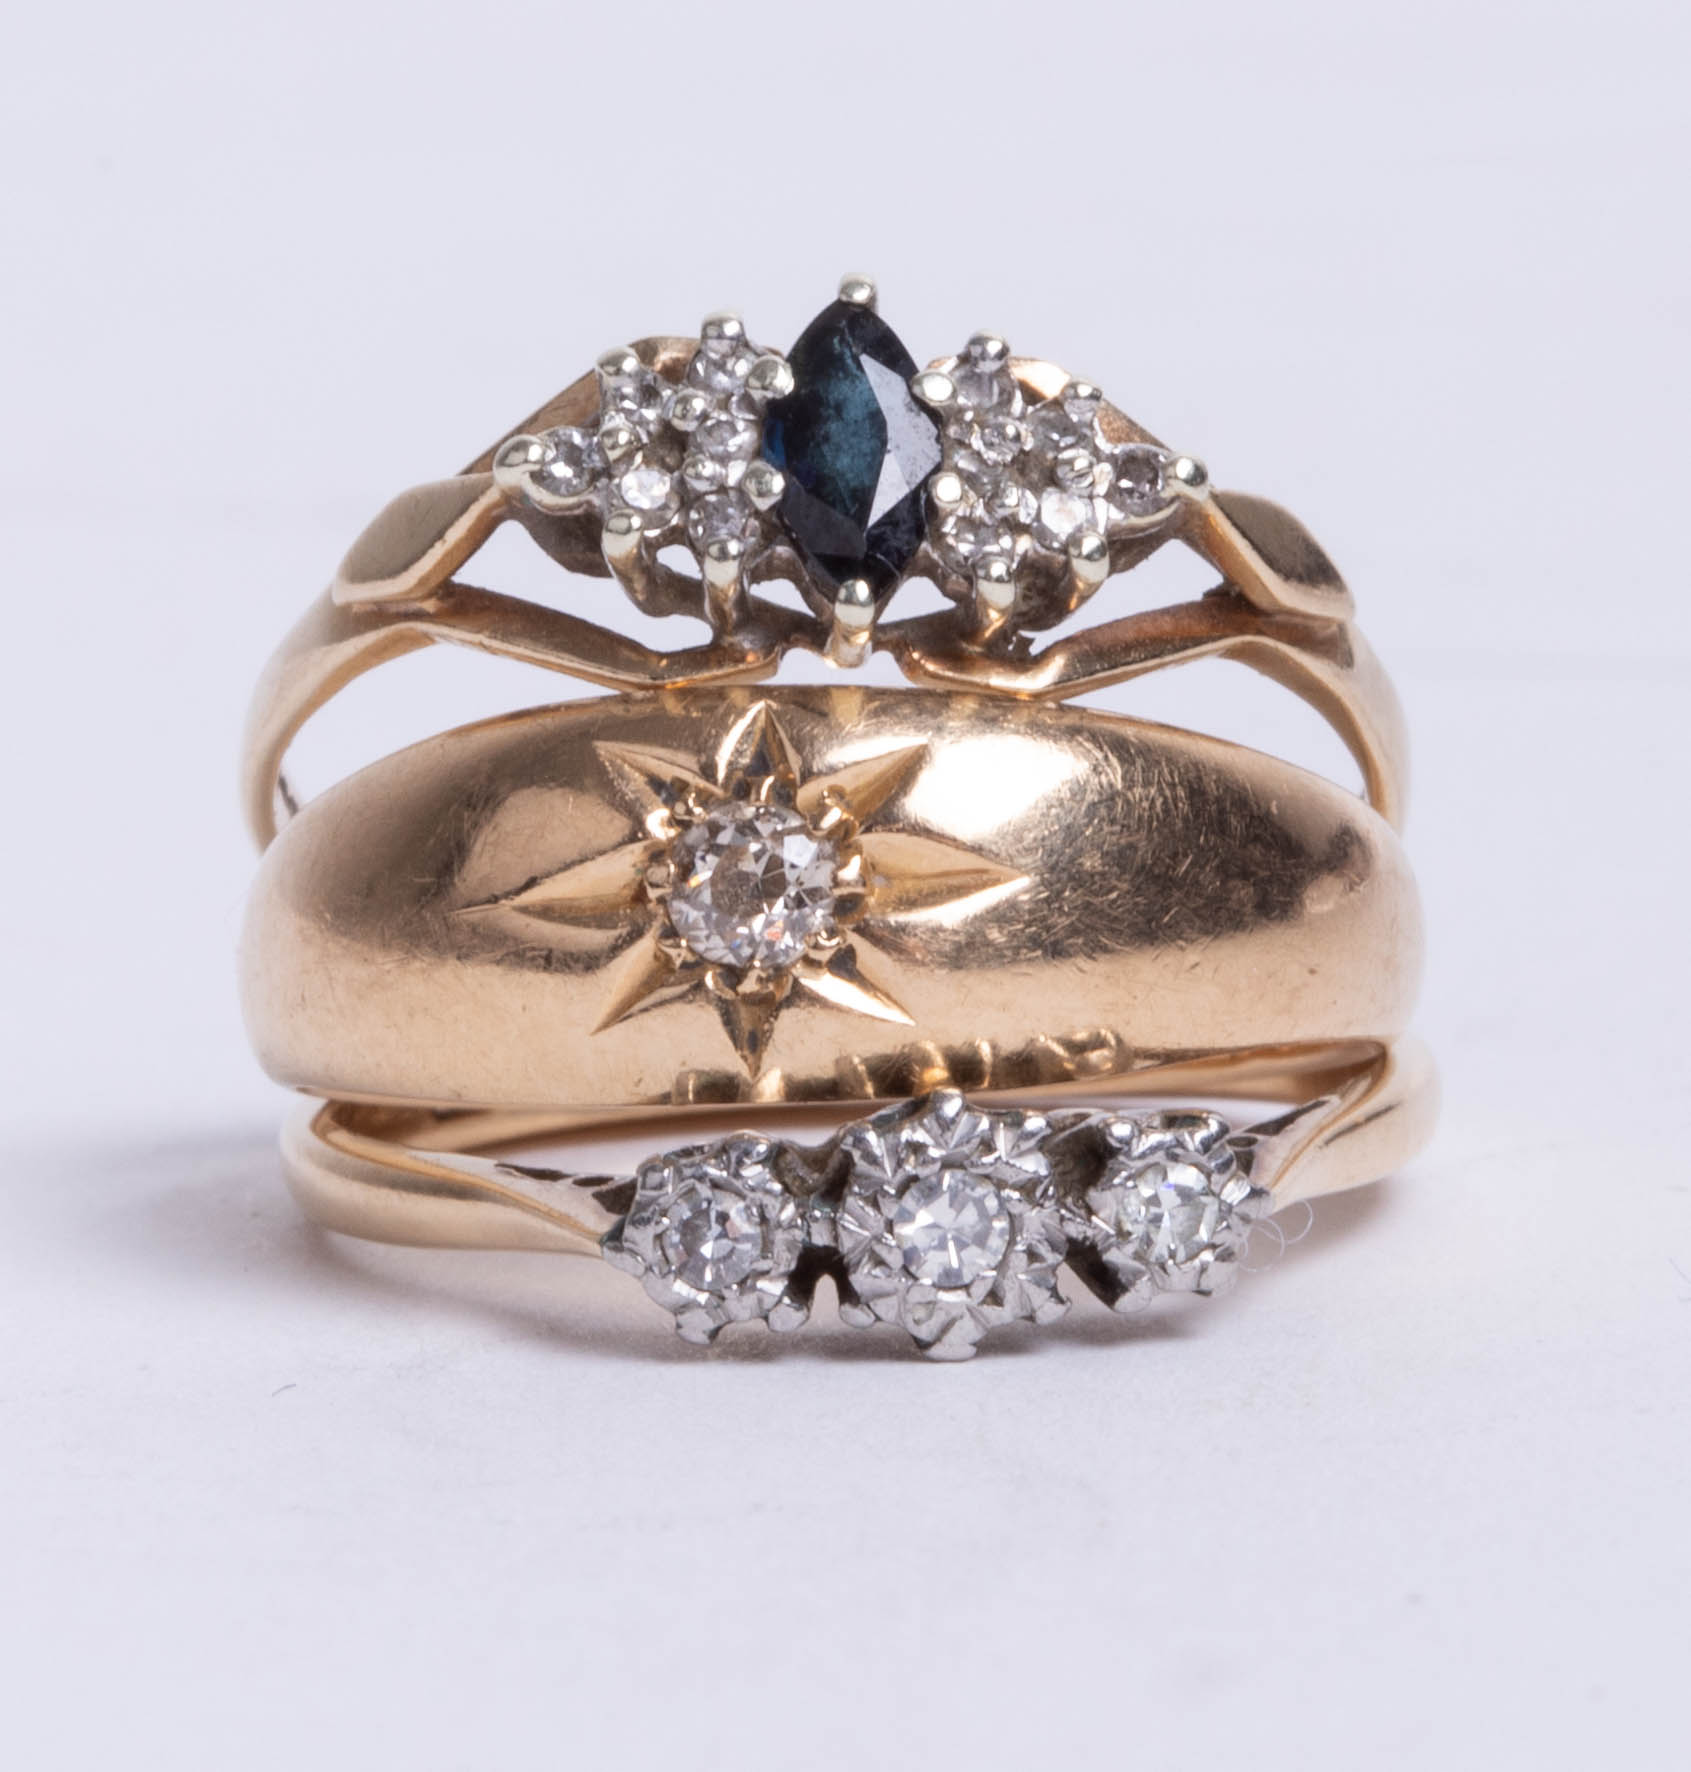 Lot 037 - Two 18ct rings (approx 6.20g) comprising gypsy ring and diamond illusion set ring also a 9ct diamond